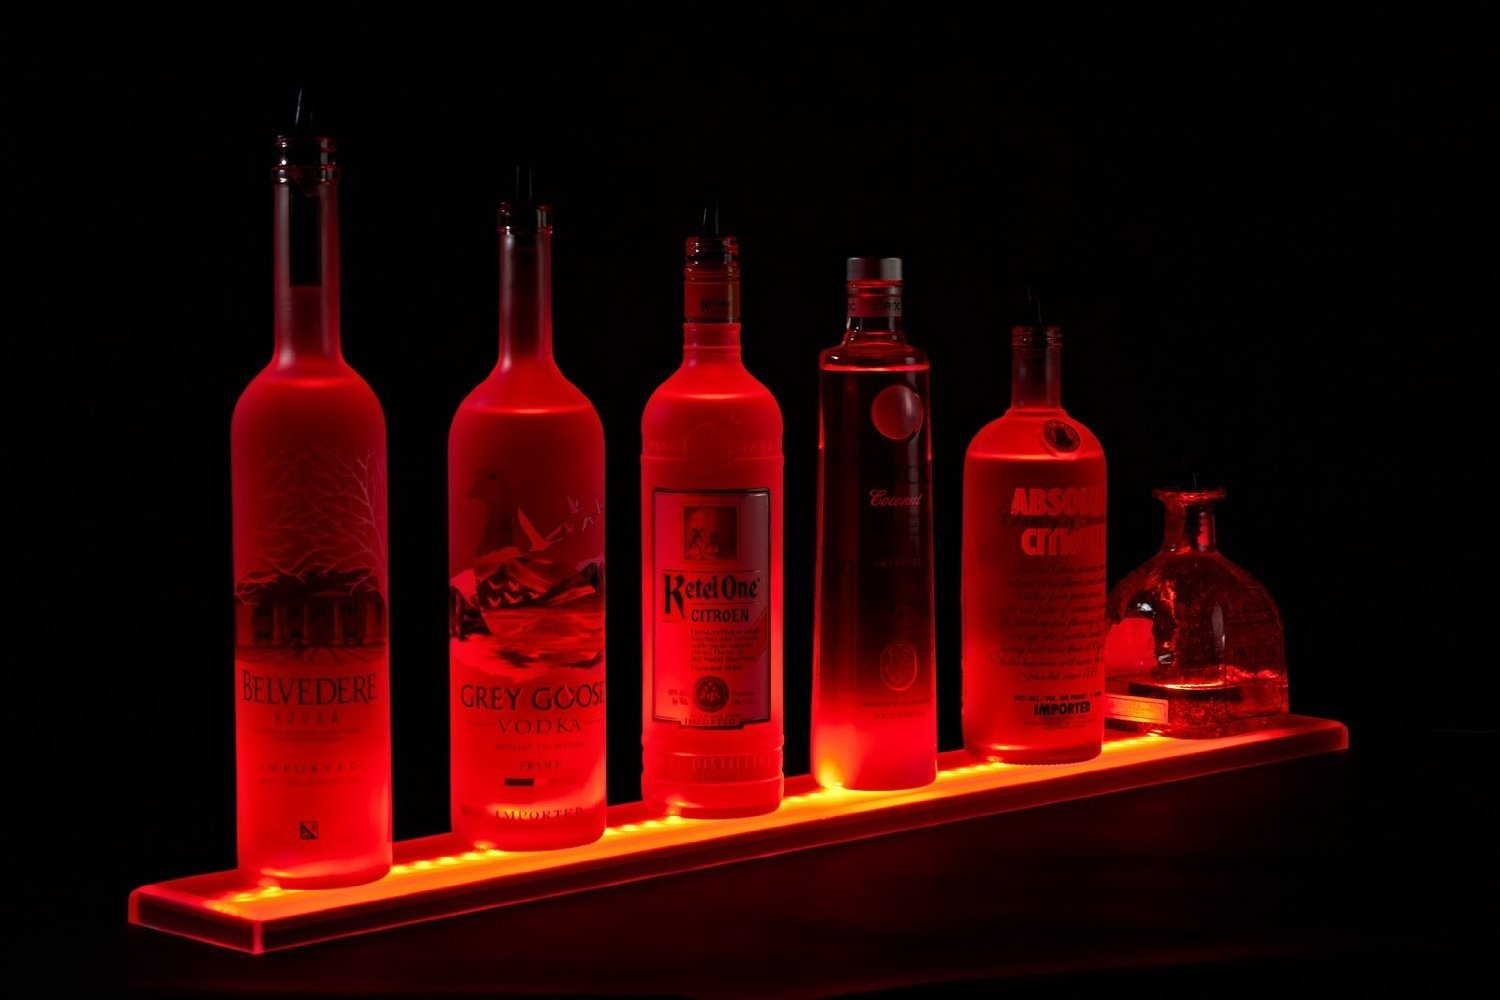 Watch further 3 Tier Led Liquor Shelf Display in addition 3 Tier Led Liquor Shelf Display furthermore The Variety Uses For Led Linear Lighting Strips A 231 also Corner Tier Led Liquor Shelf Display. on liquor shelves for led light strips